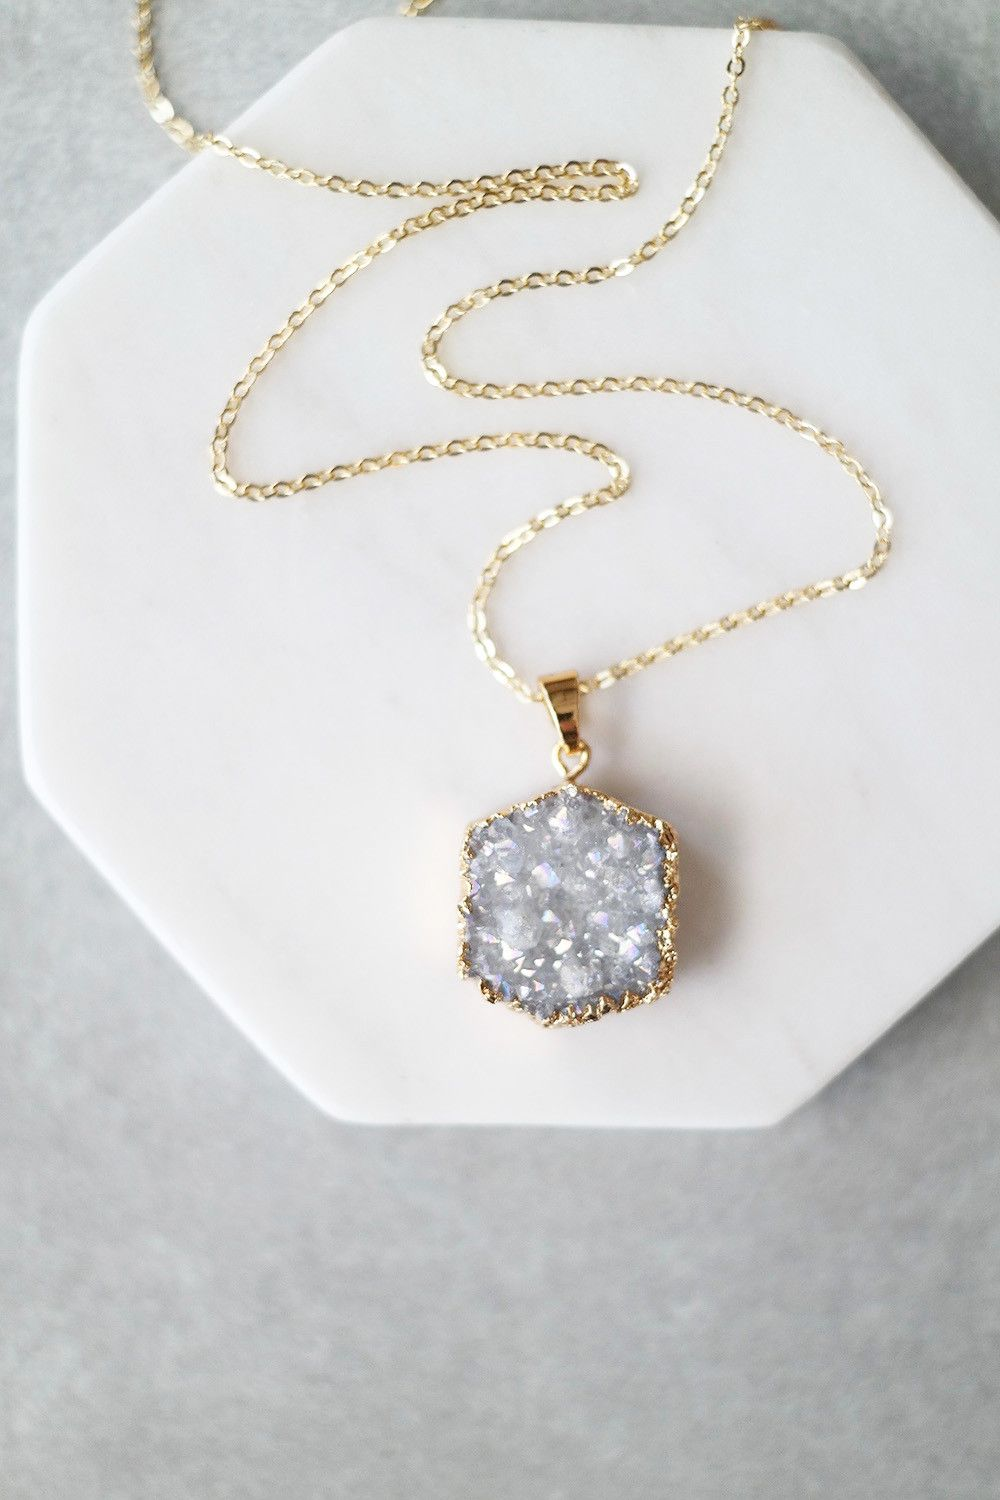 Druzy hex necklace metal chain lobster clasp and closure